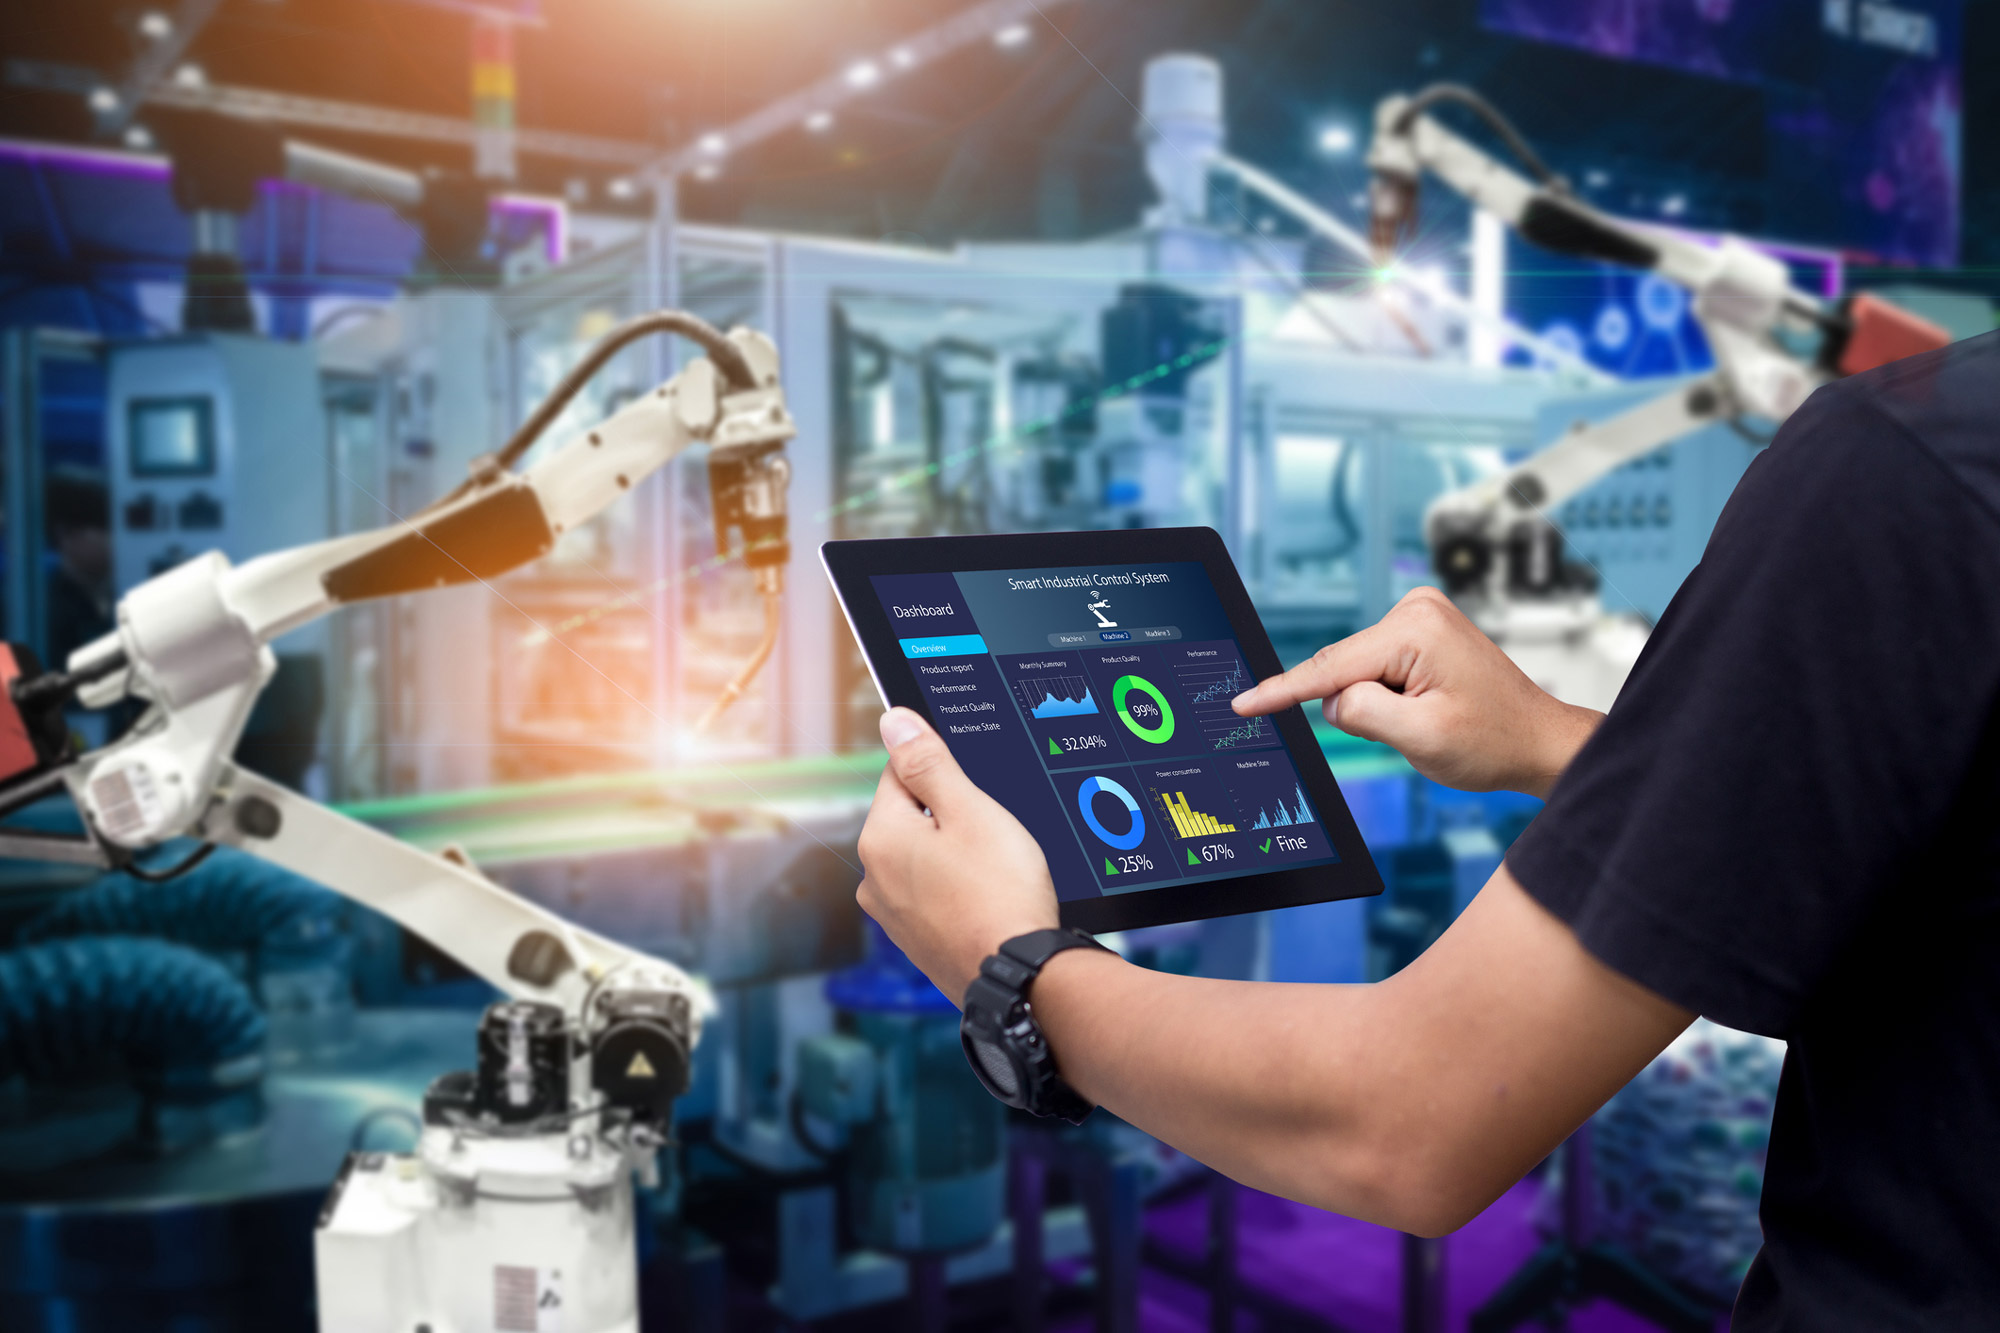 IoT in Industrial Manufacturing: Its Impact and Use Cases